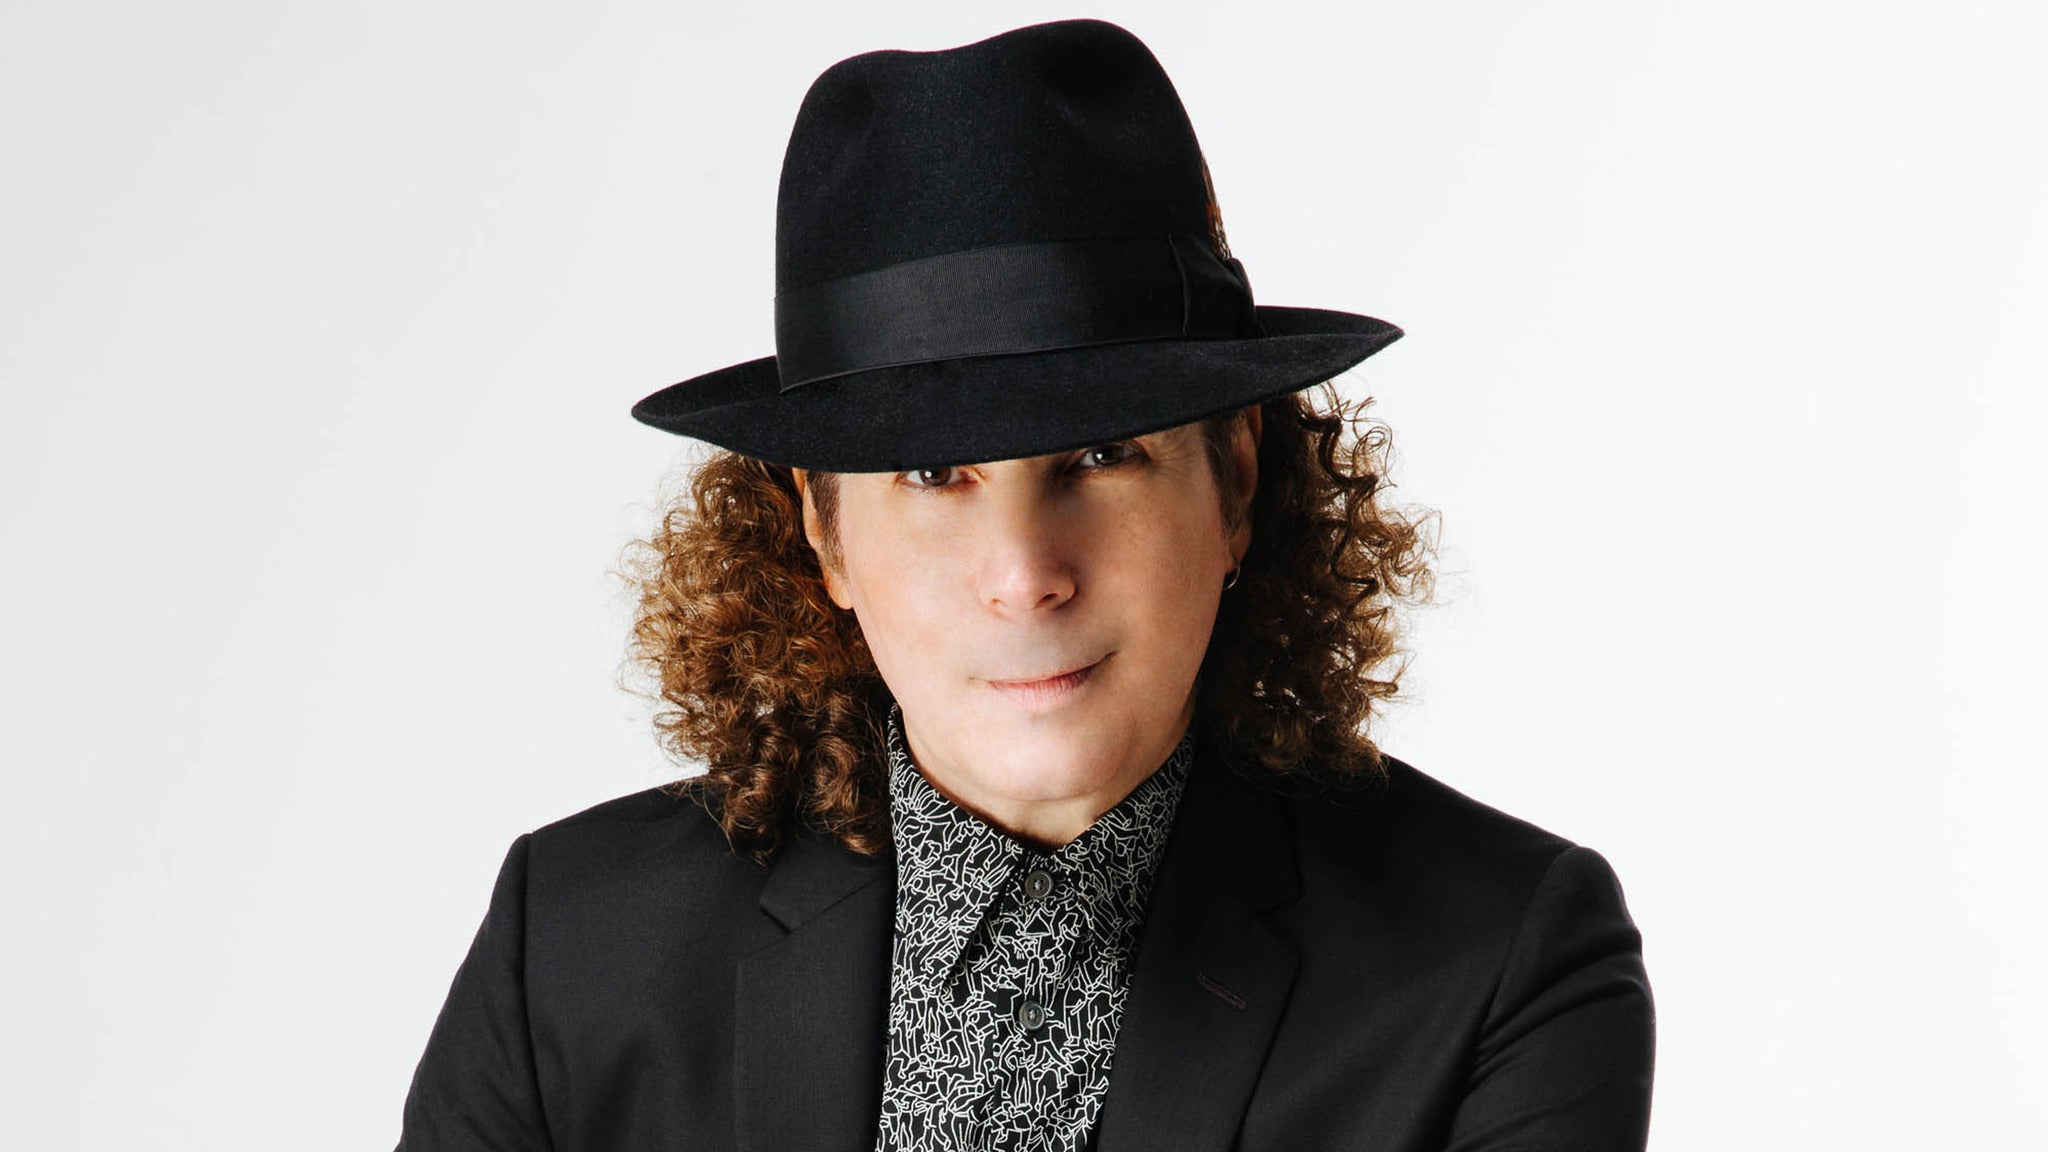 Boney James at North Charleston Performing Arts Center